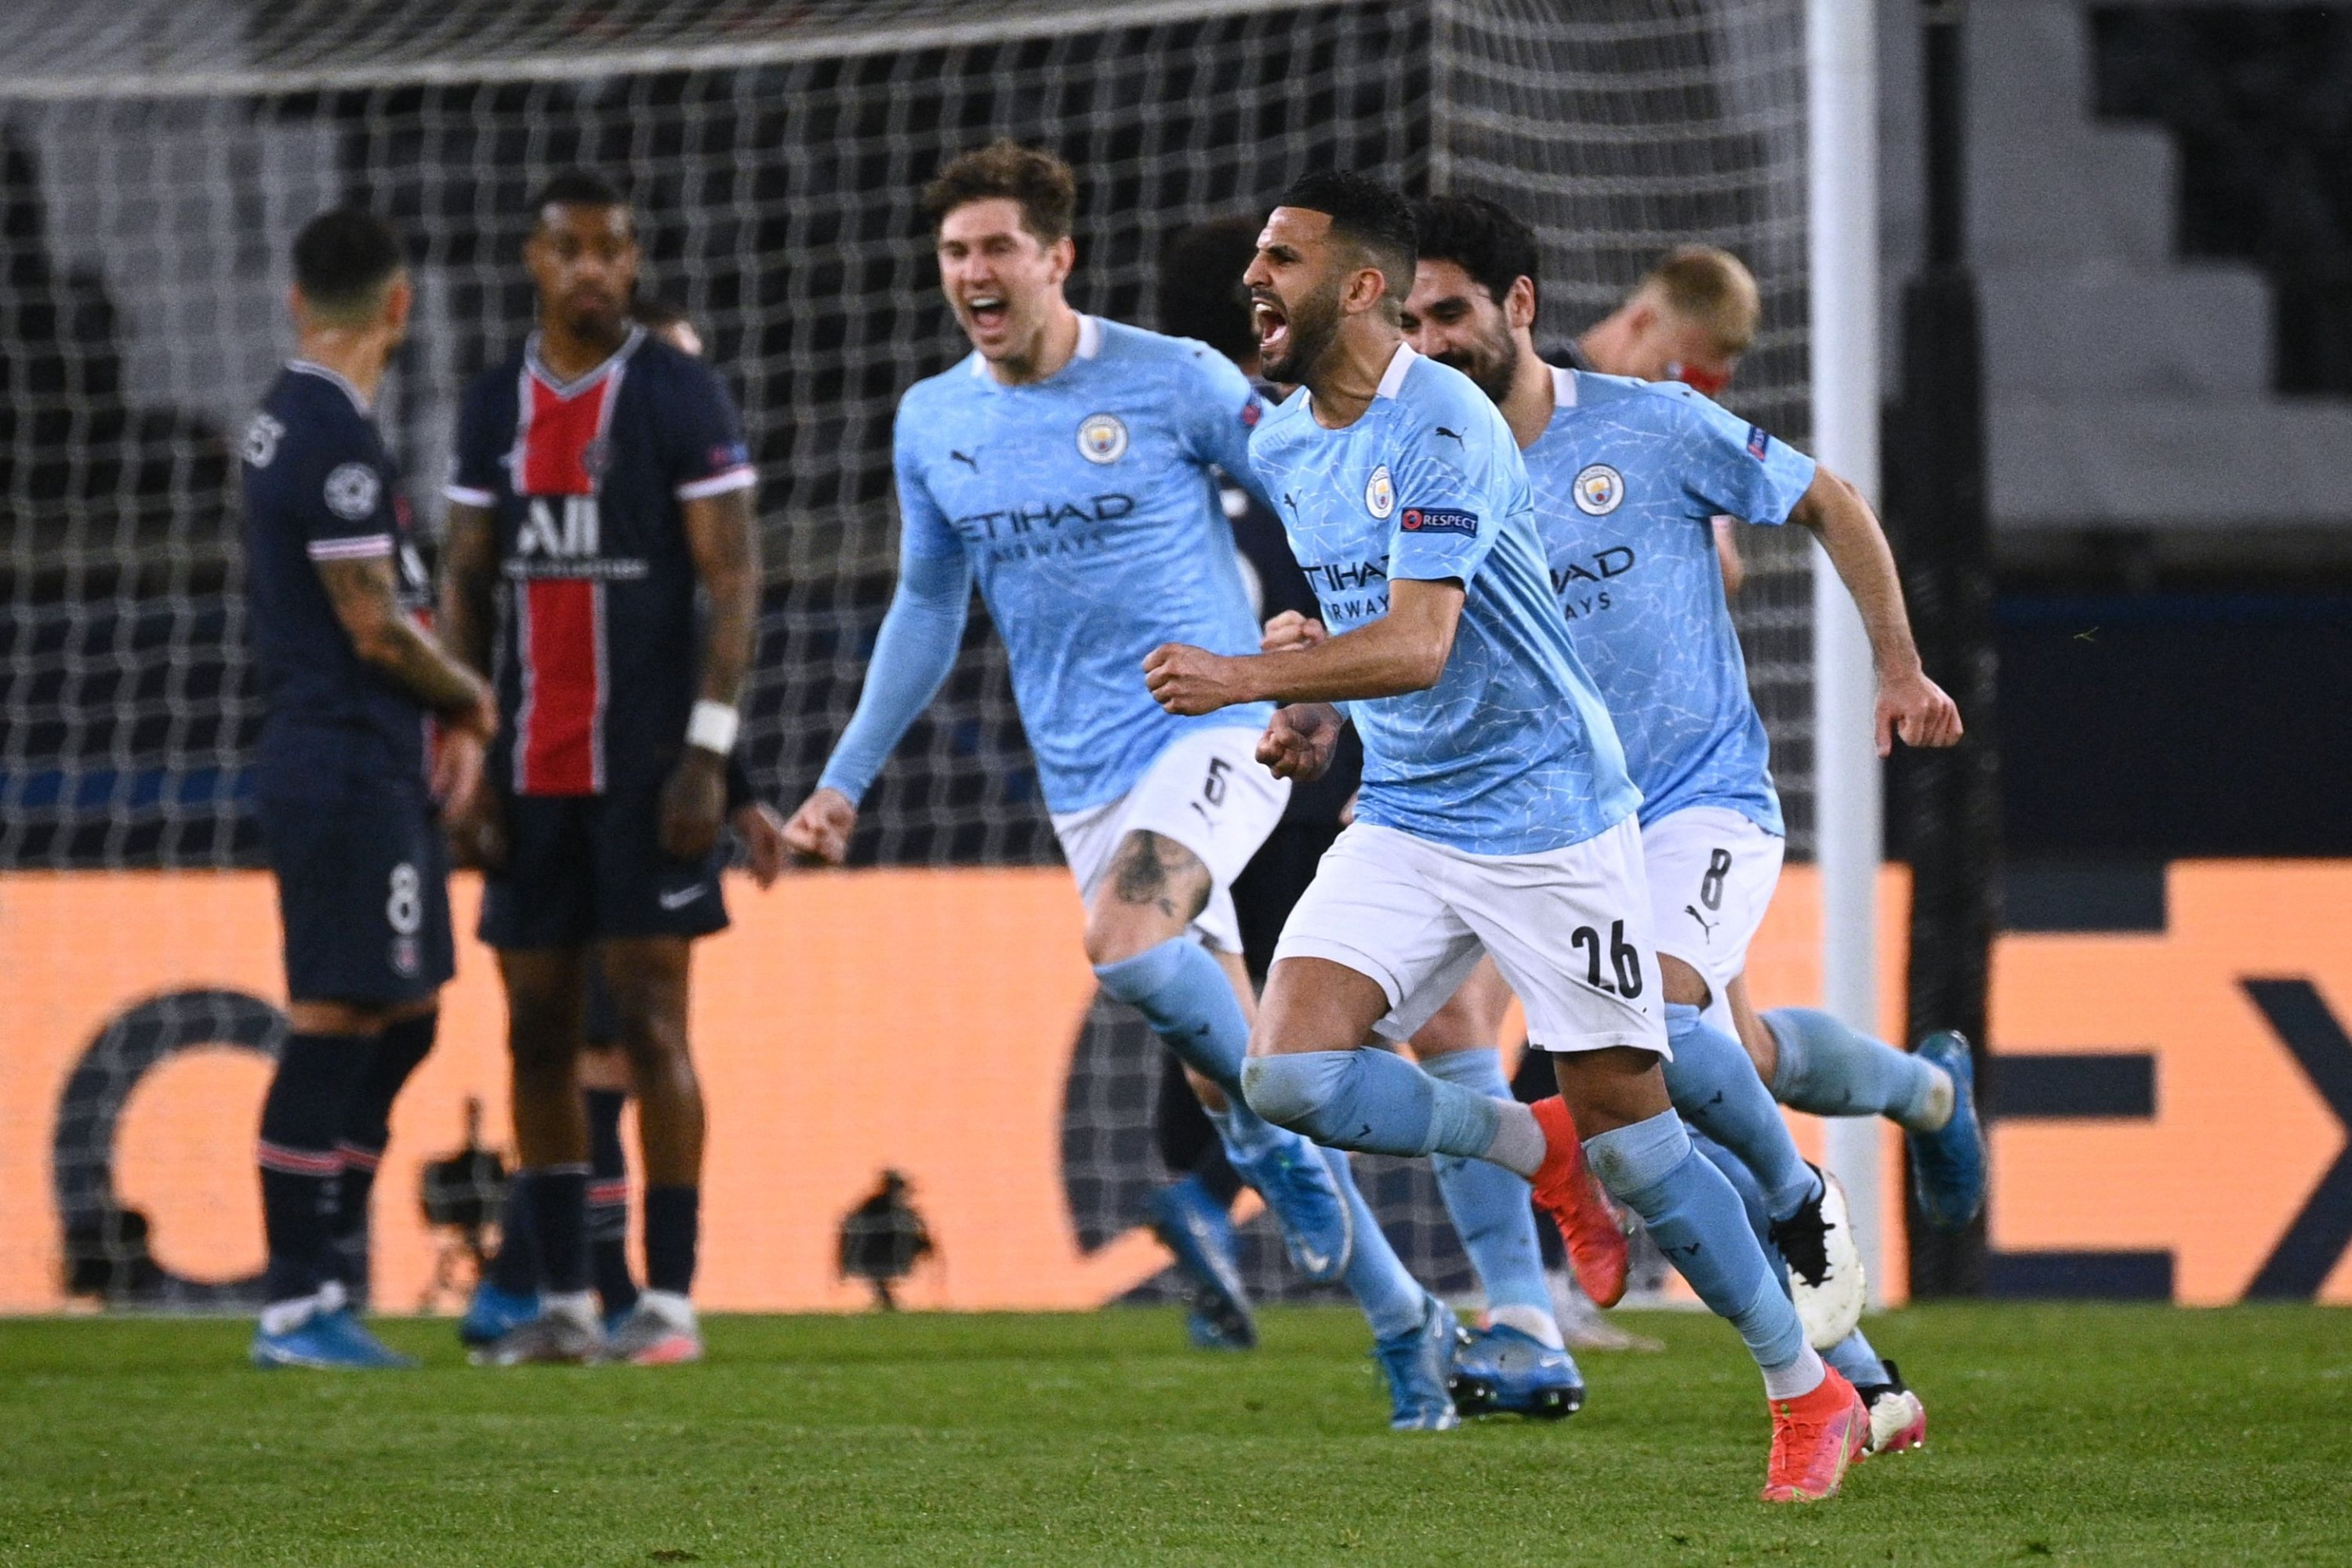 Man City Faces Psg With Eye On 1st Ever Champions League Final Daily Sabah